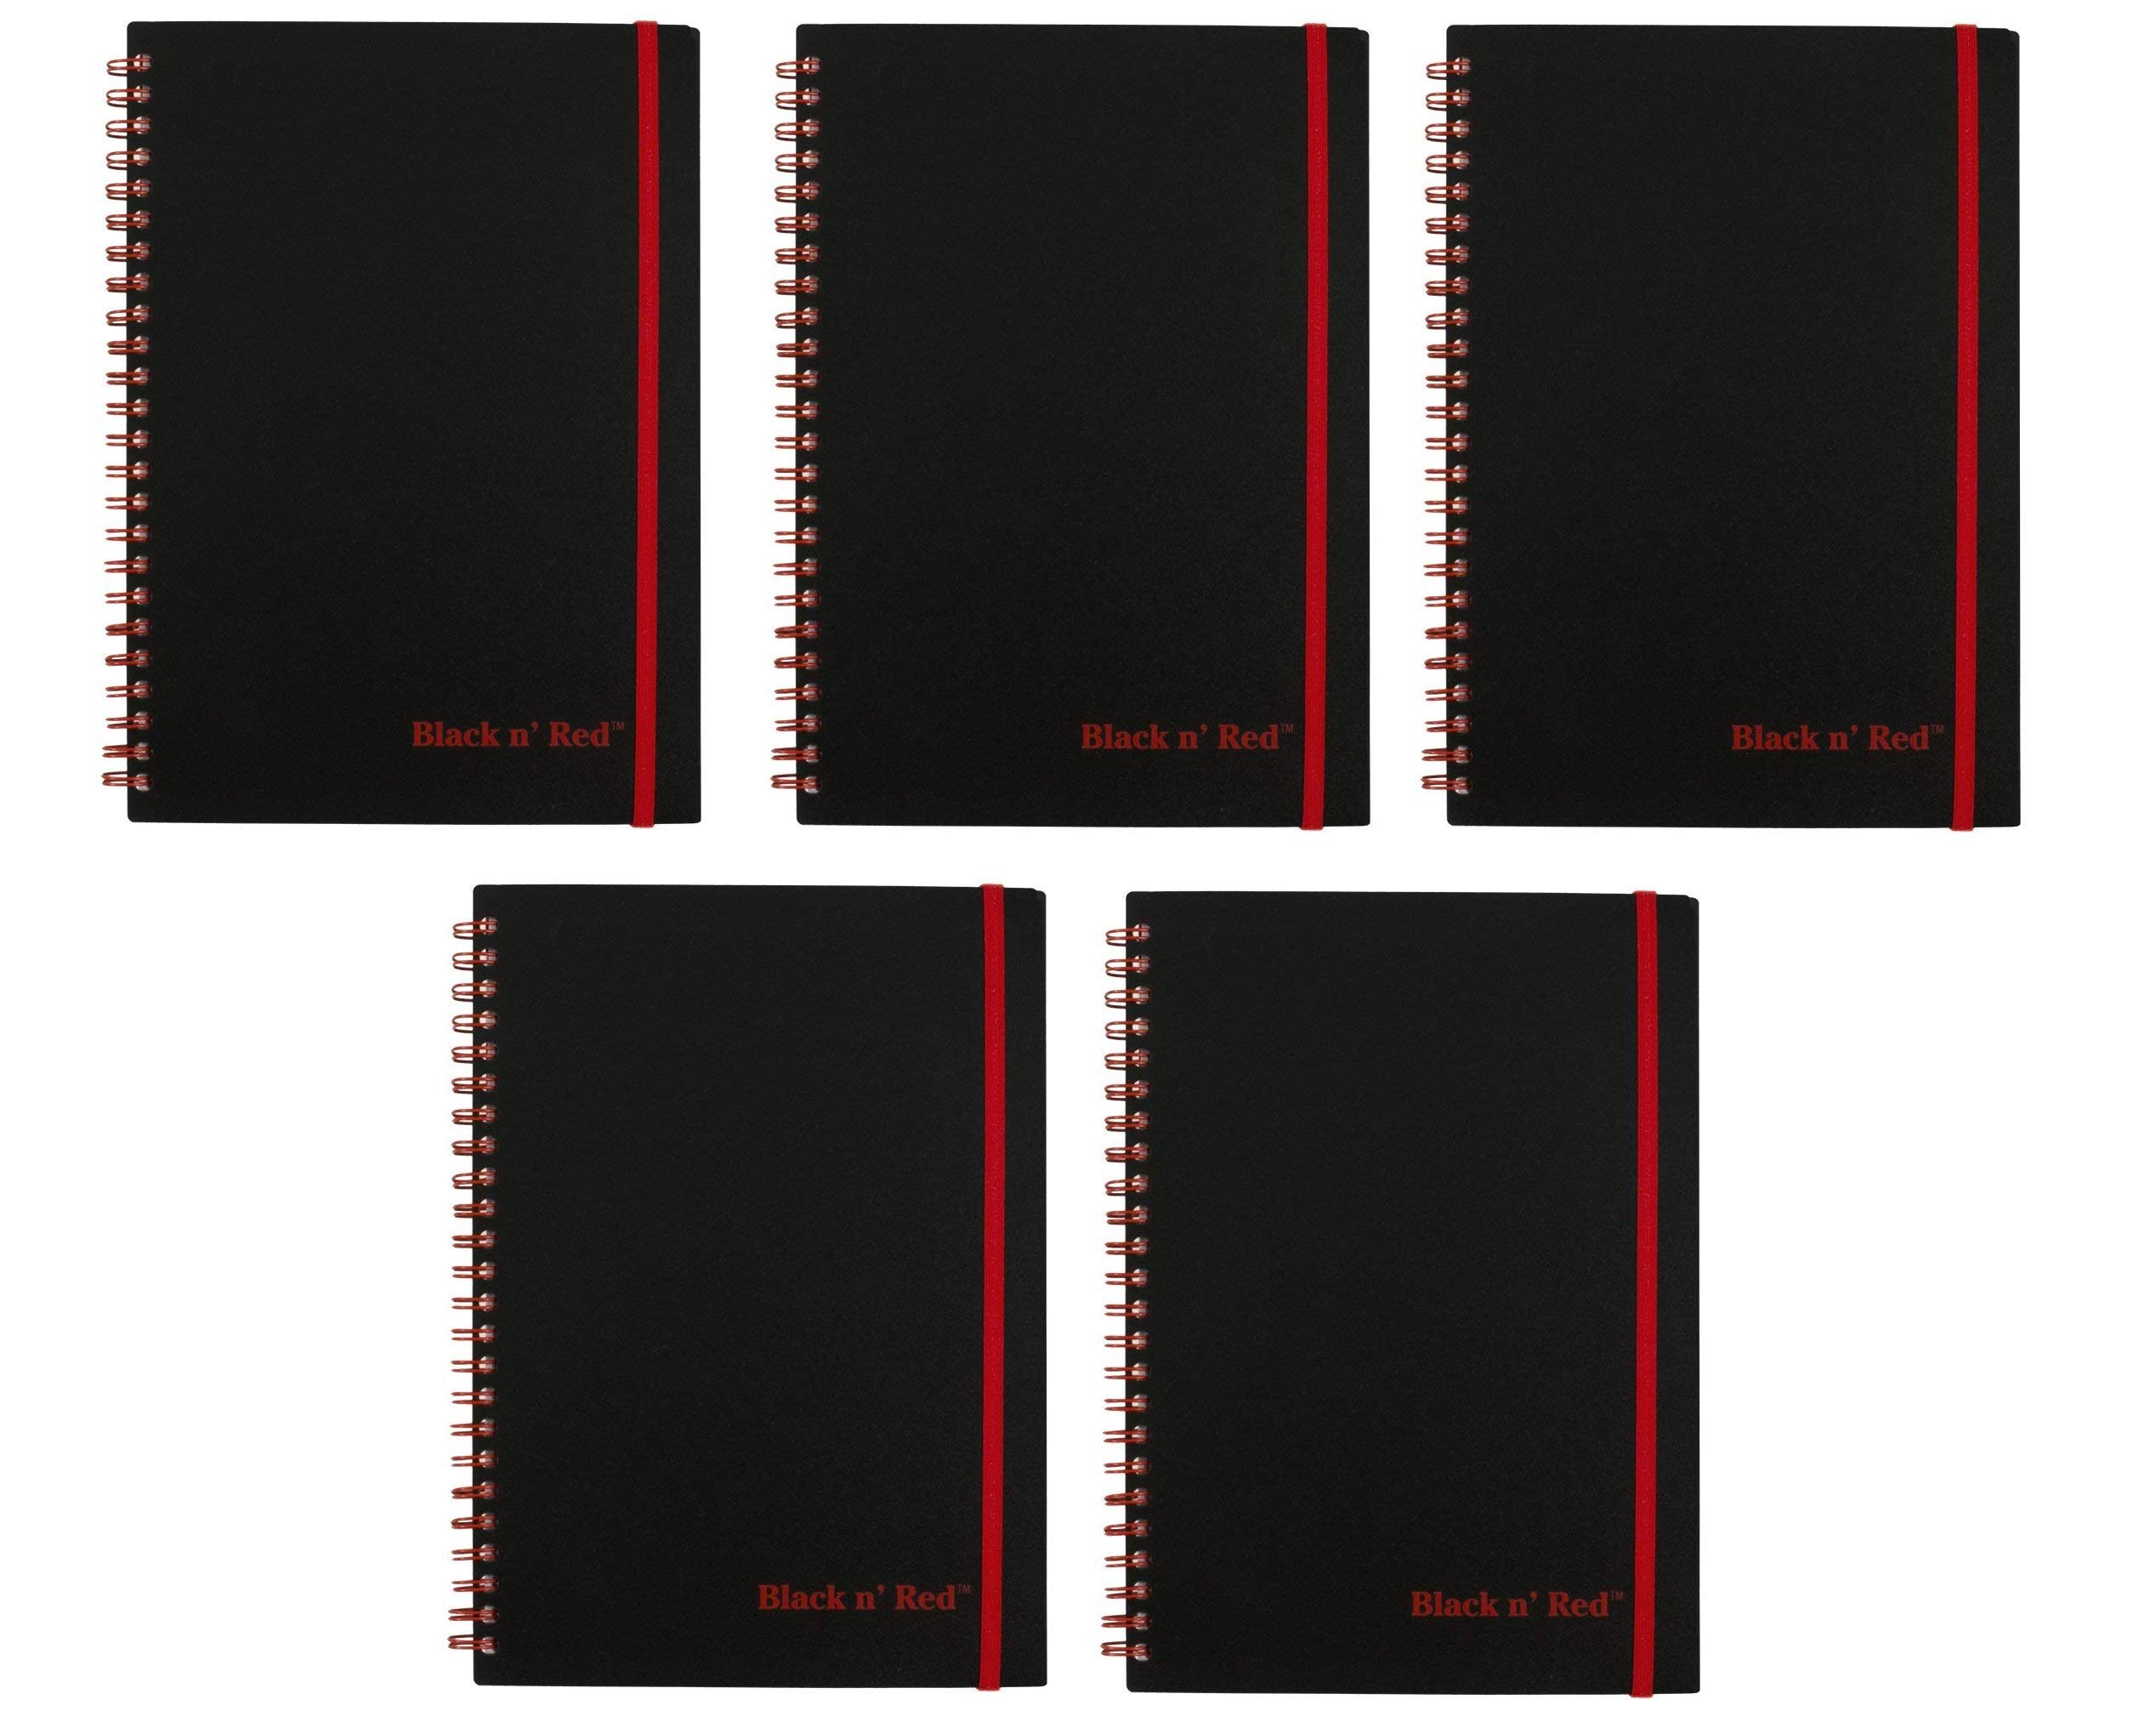 Black n' Red Twin Wire Poly Cover Notebook, 8-1/4'' x 5-7/8'', Black/Red, 70 Ruled Sheets, Sold as 5 Pack (C67009)